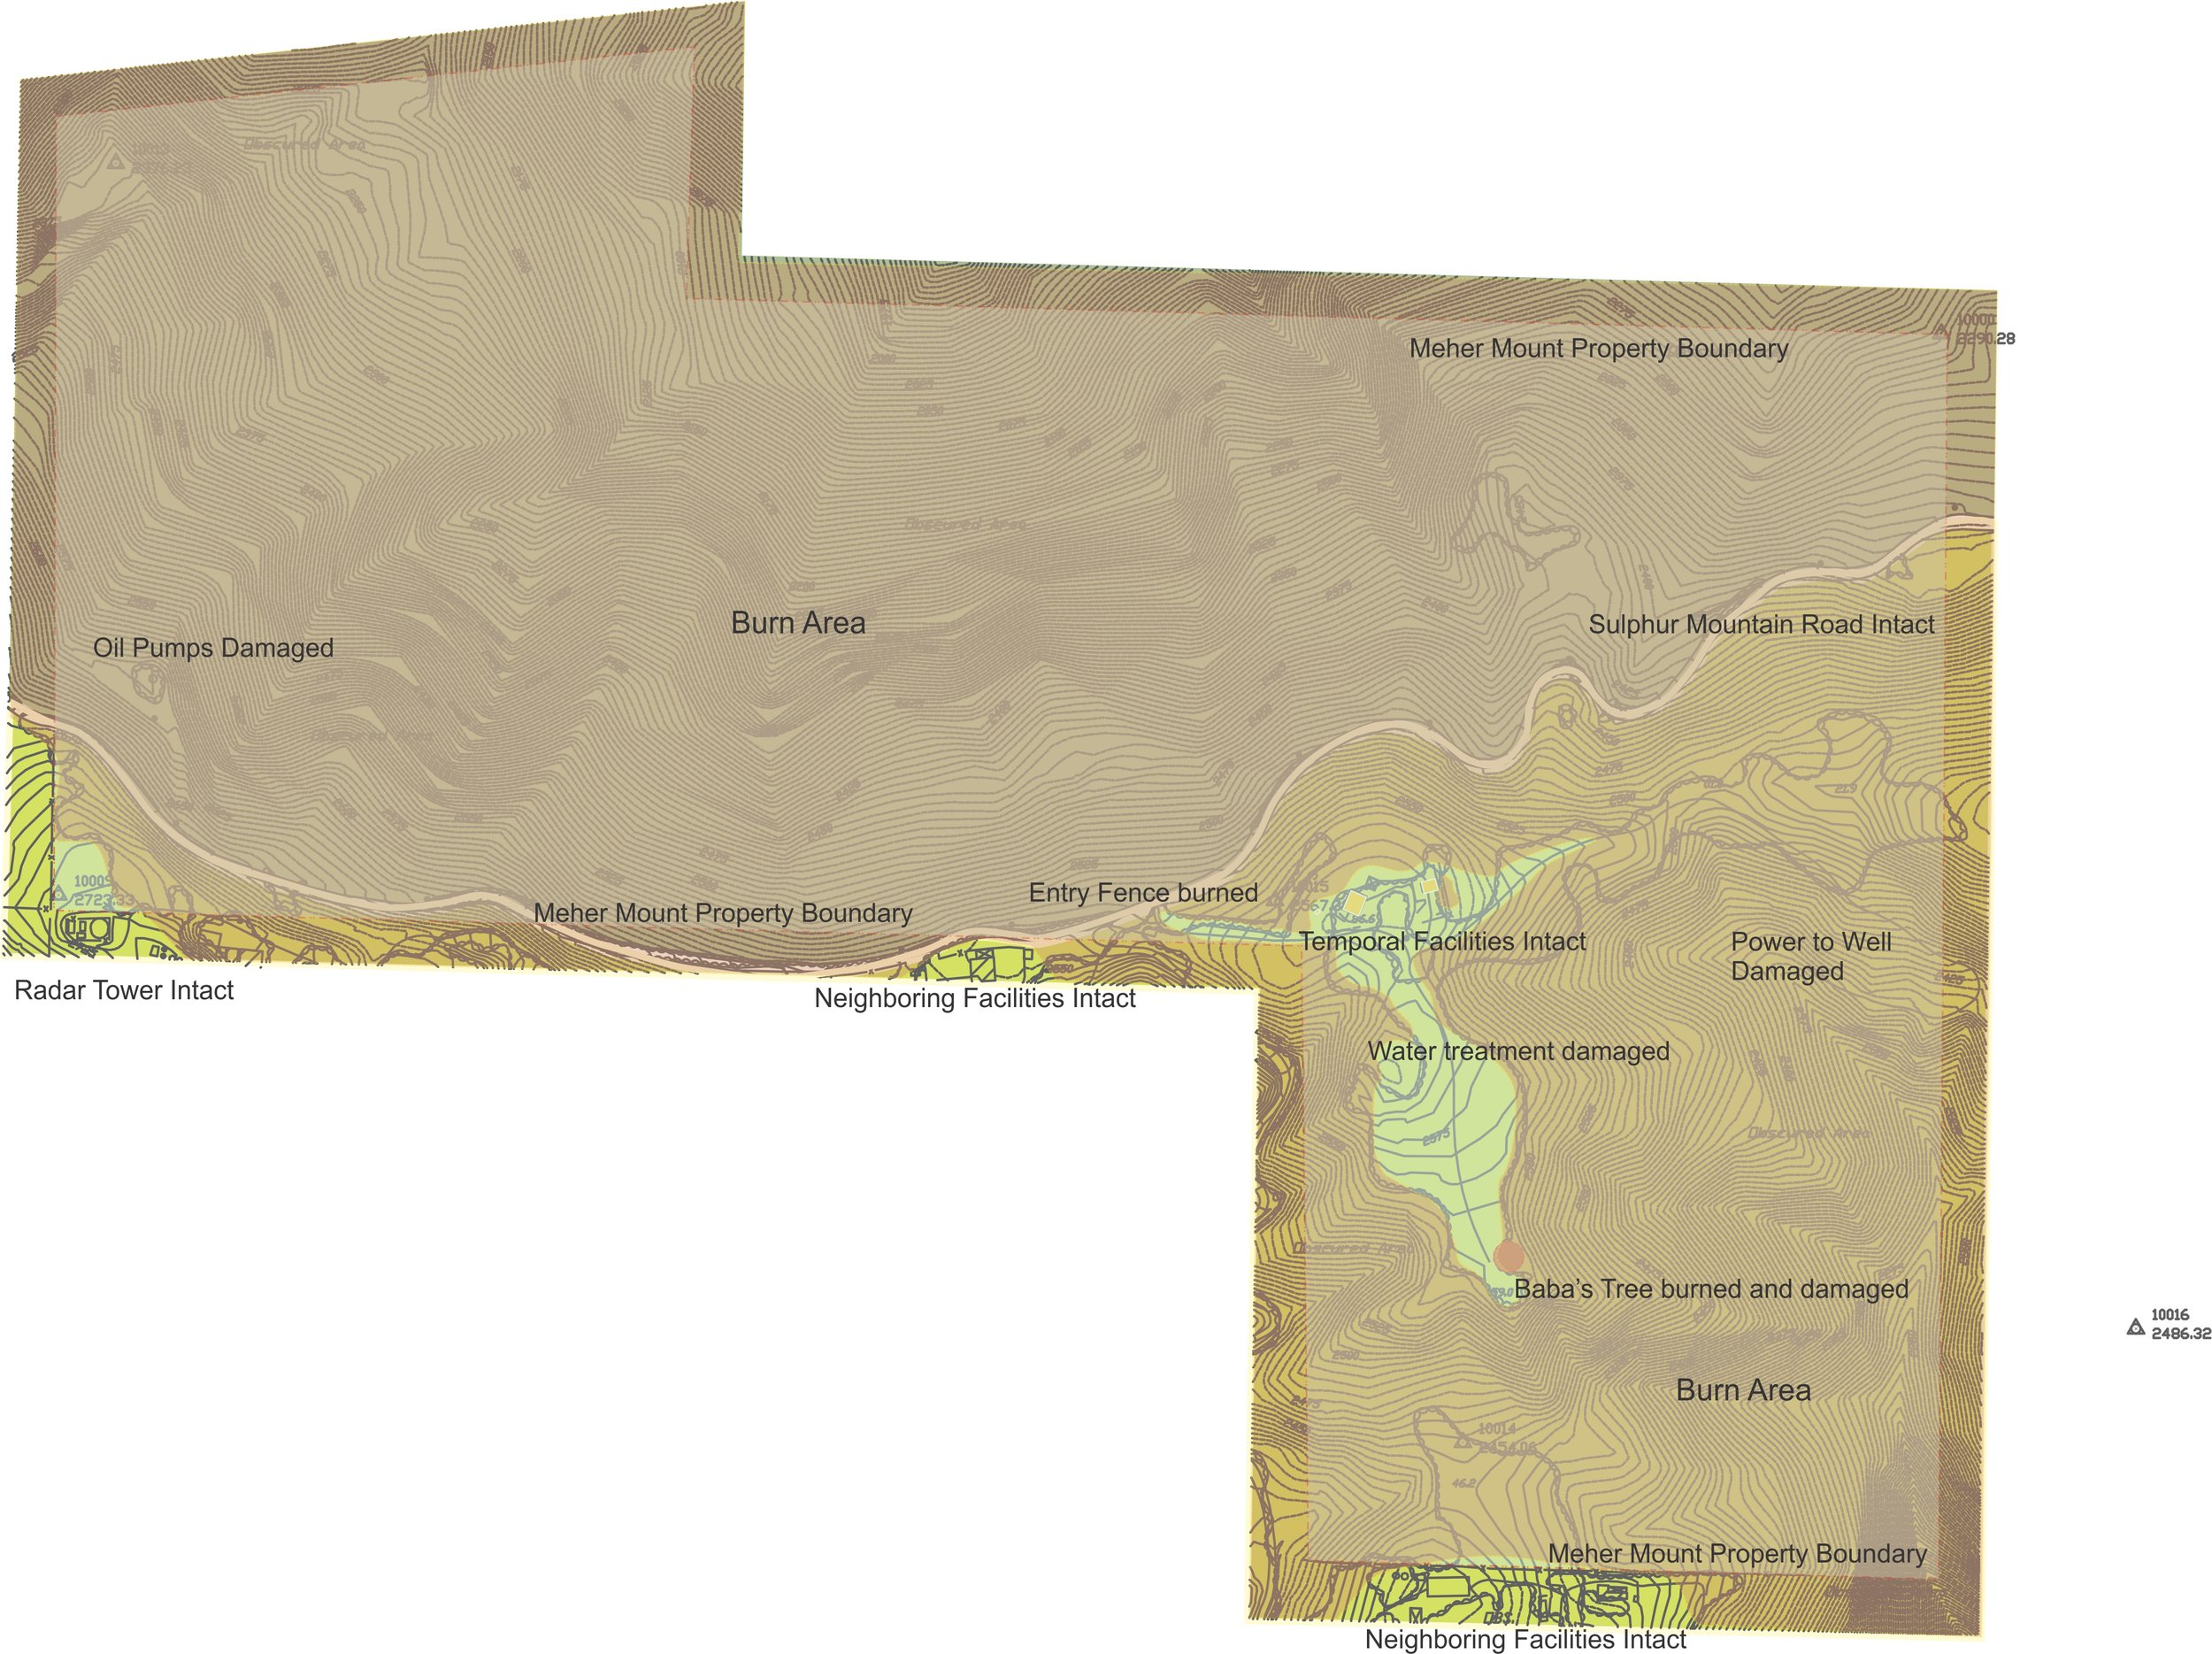 A MAP OF MEHER MOUNT highlighting the burned areas from the 2017 Thomas Fire. (Map: Byron Pinckert, December 21, 2017)